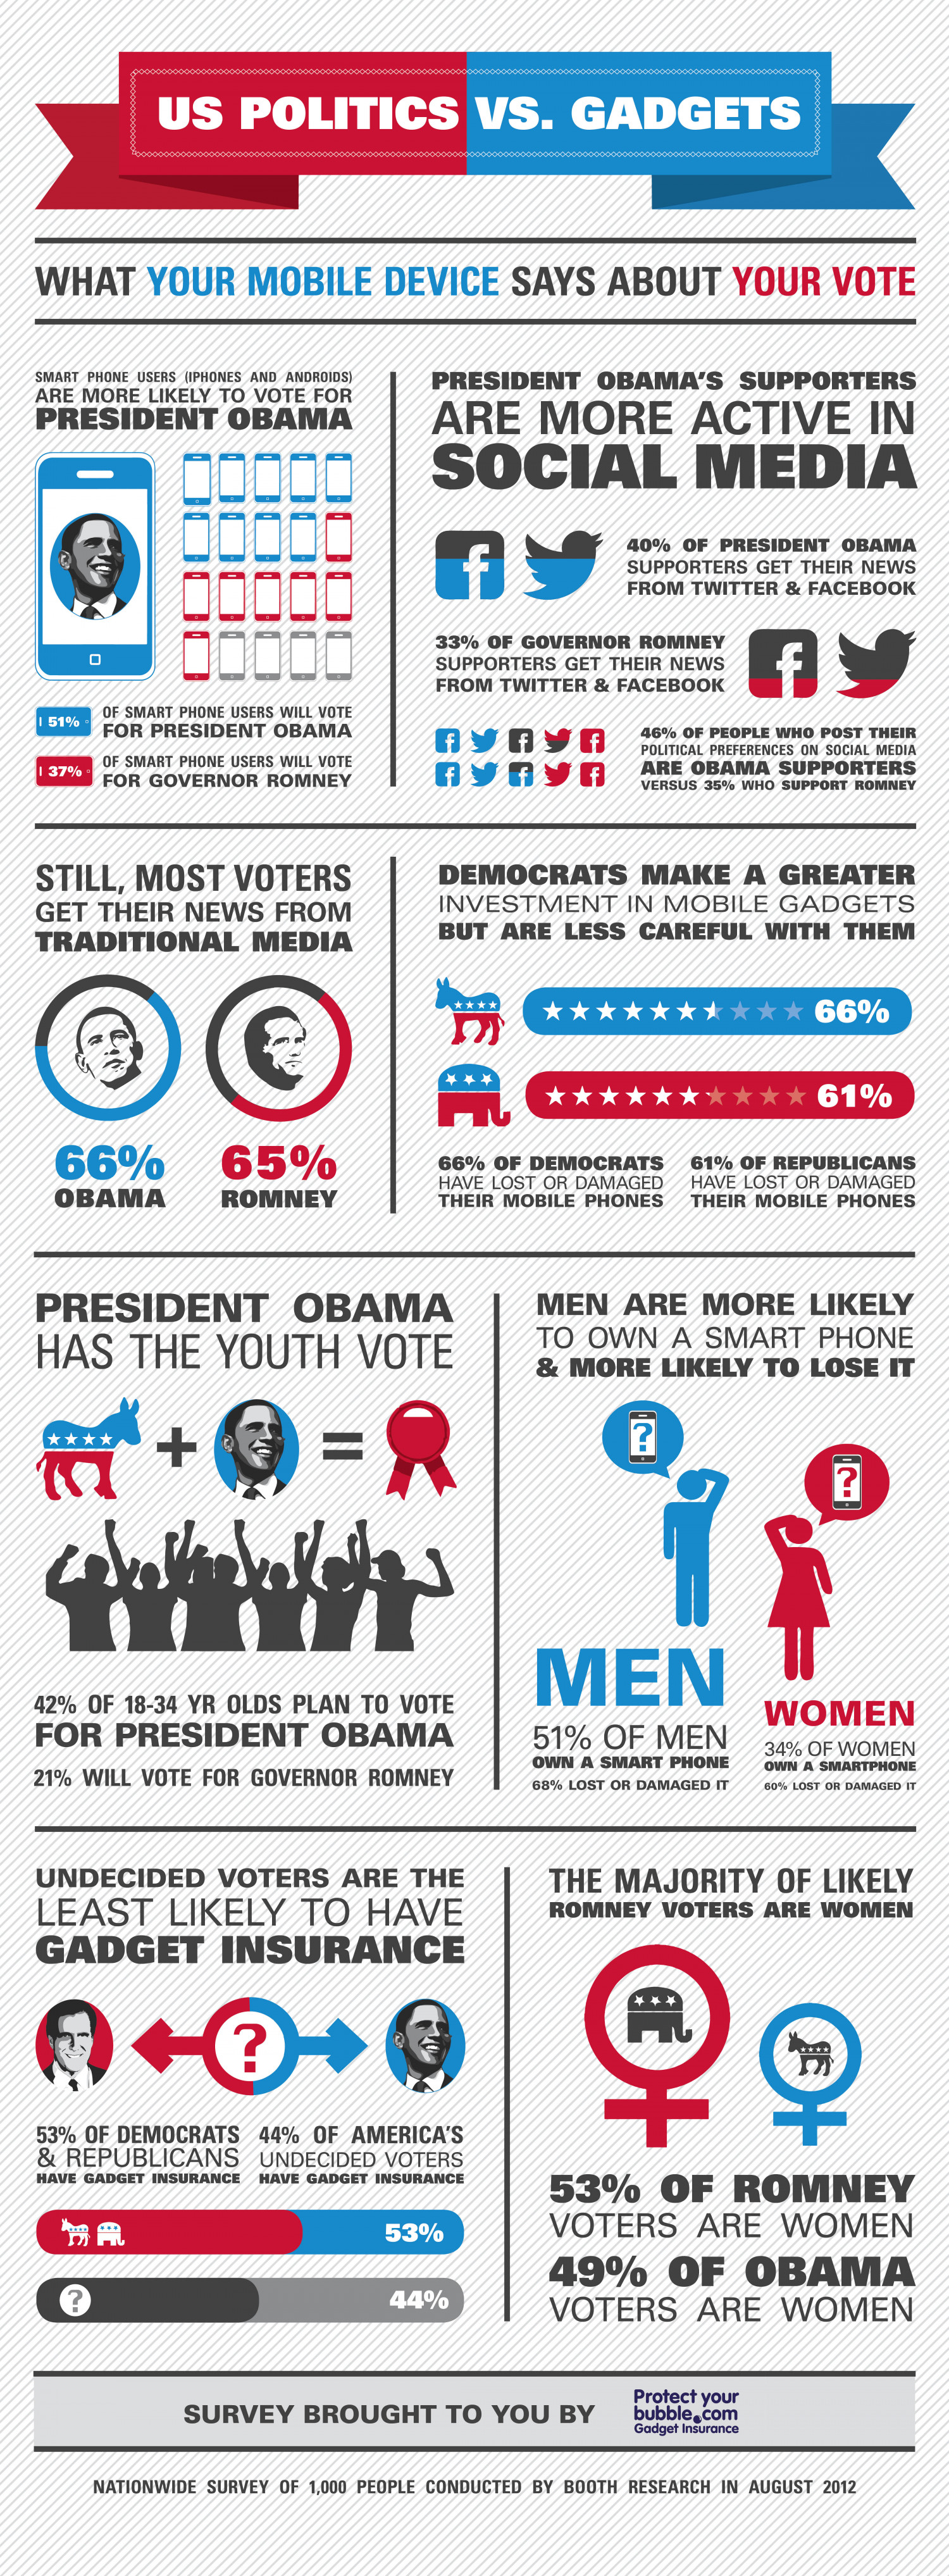 Why #areyoubetteroff GOP Hashtag #failed: US Politics Vs. Gadgets Infographic